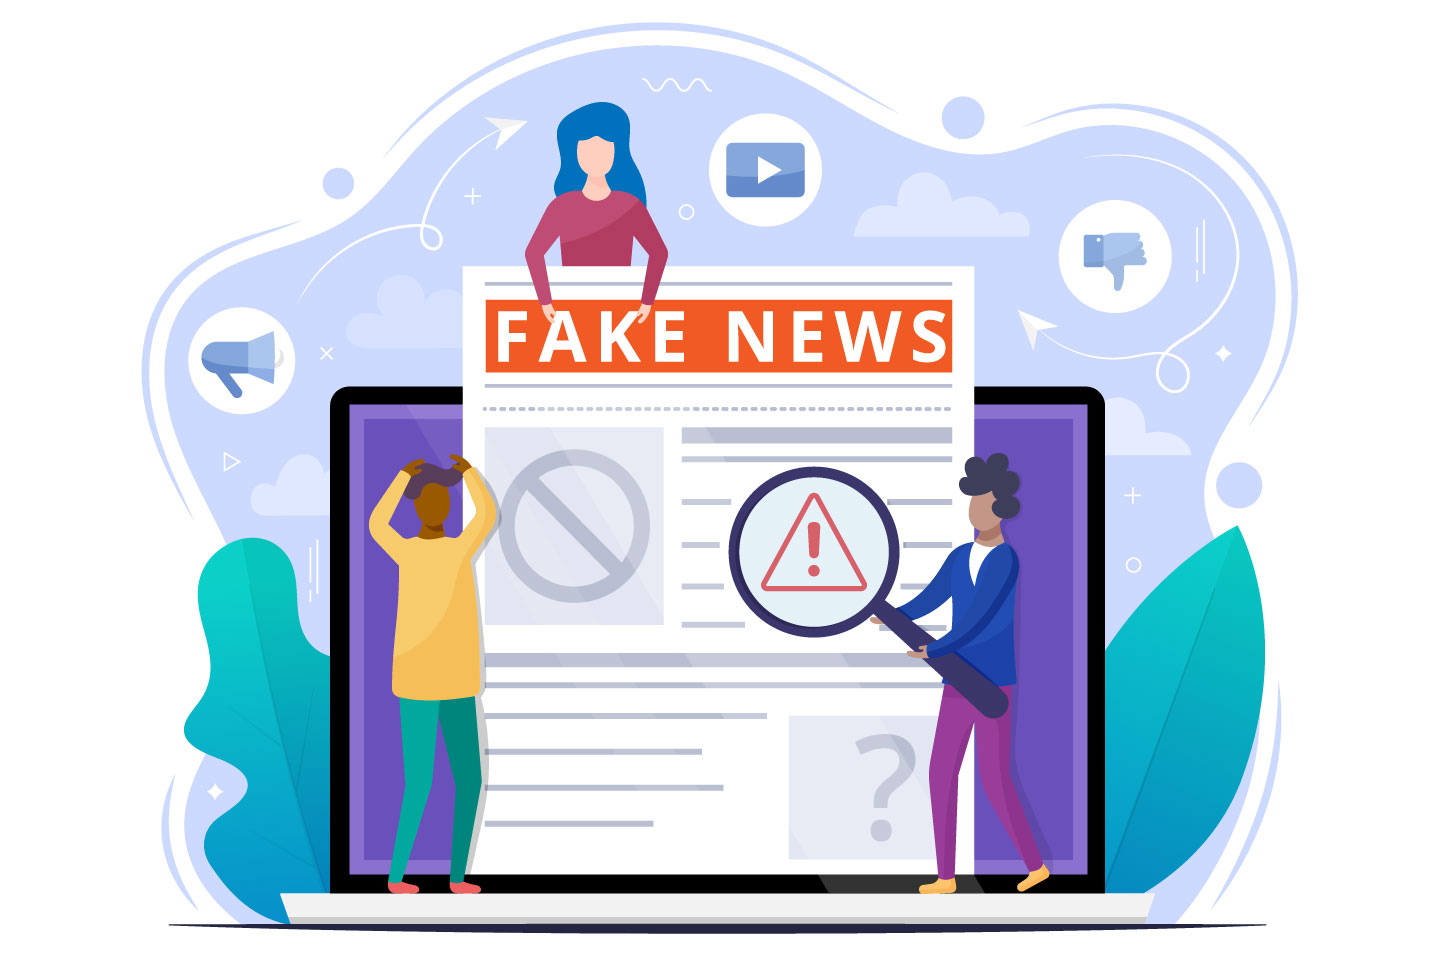 Fake News Flat Illustration